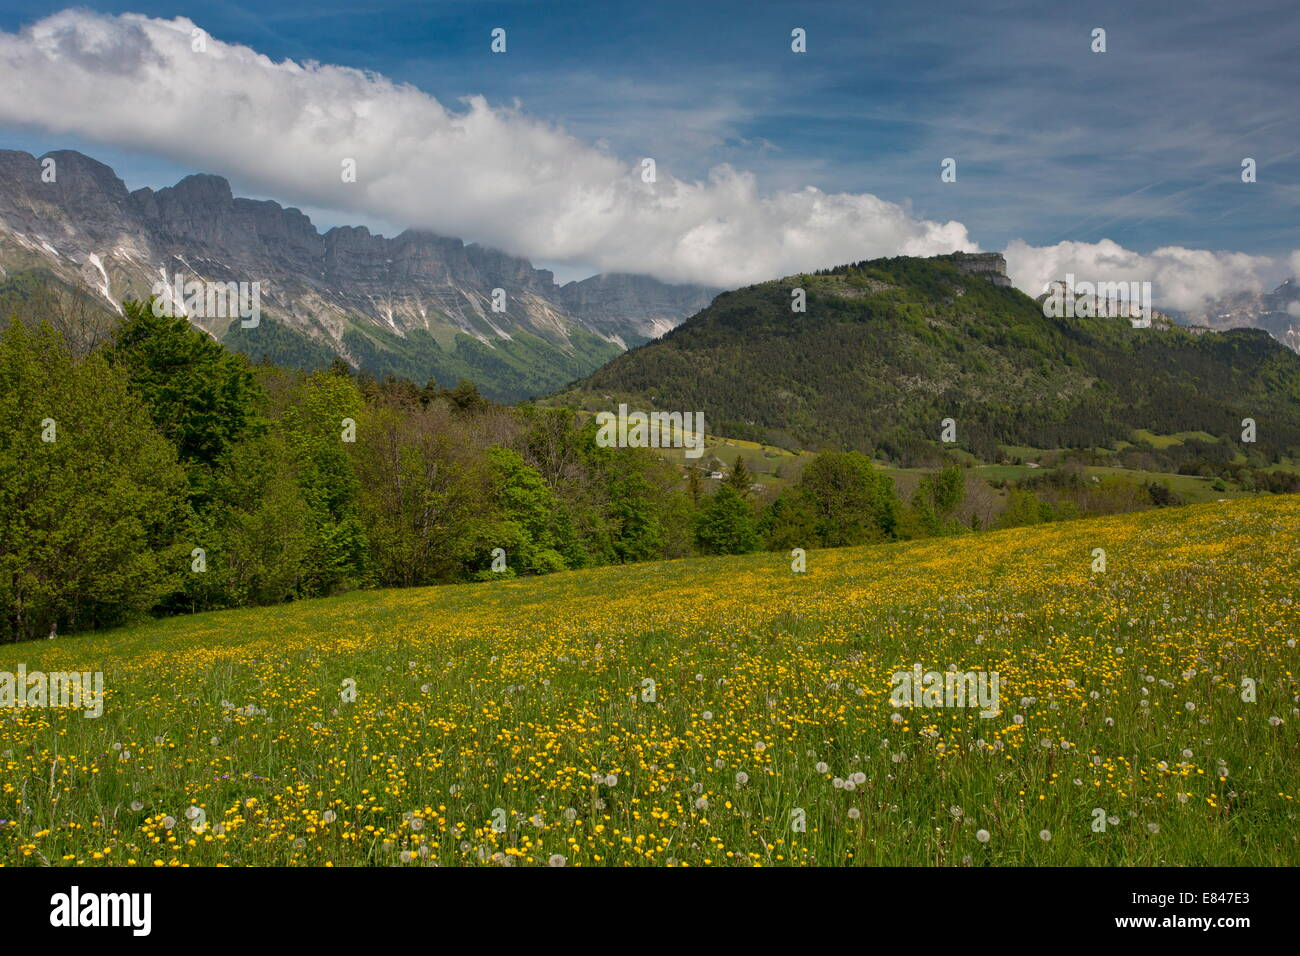 The eastern scarp of the limestone Vercors mountains, from Col de L'Allimas, east France. - Stock Image